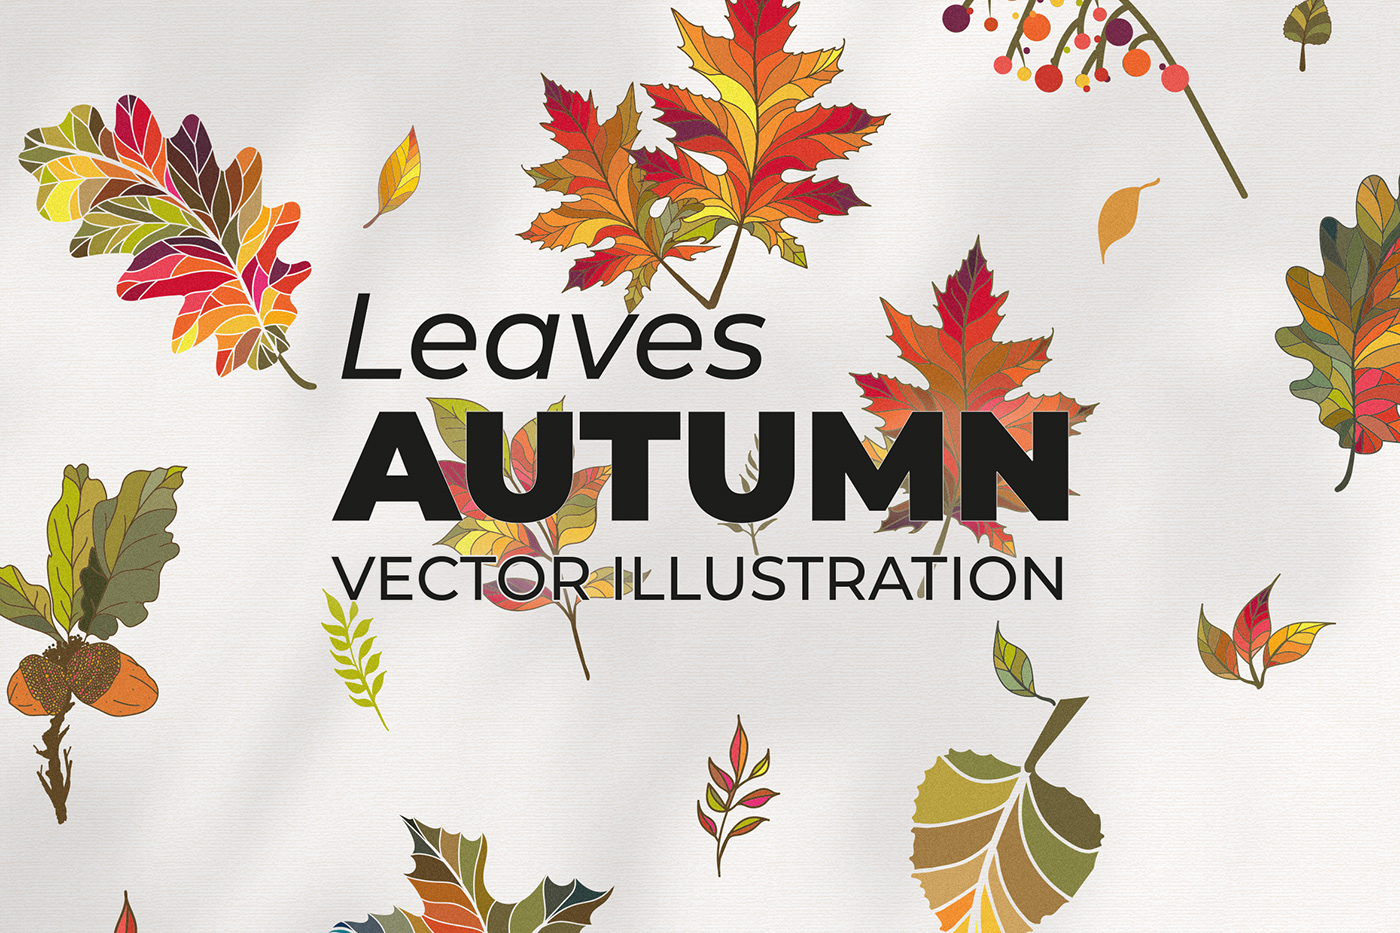 artwork autumn autumn leaves colorful Digital Art  Drawing  Fall forest ILLUSTRATION  vector